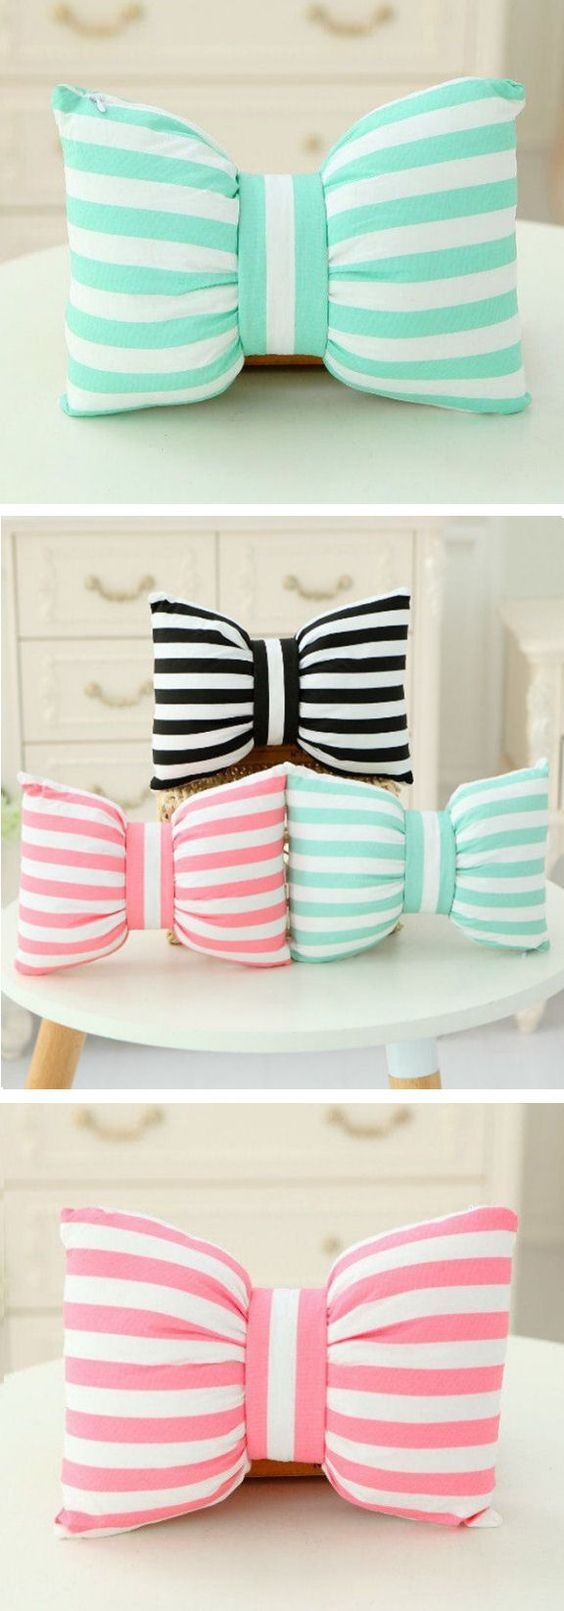 cUte Stripe Bowknot Pillows ? ** Wish List & Fun Products** Pinterest Patrones, Bows and ...